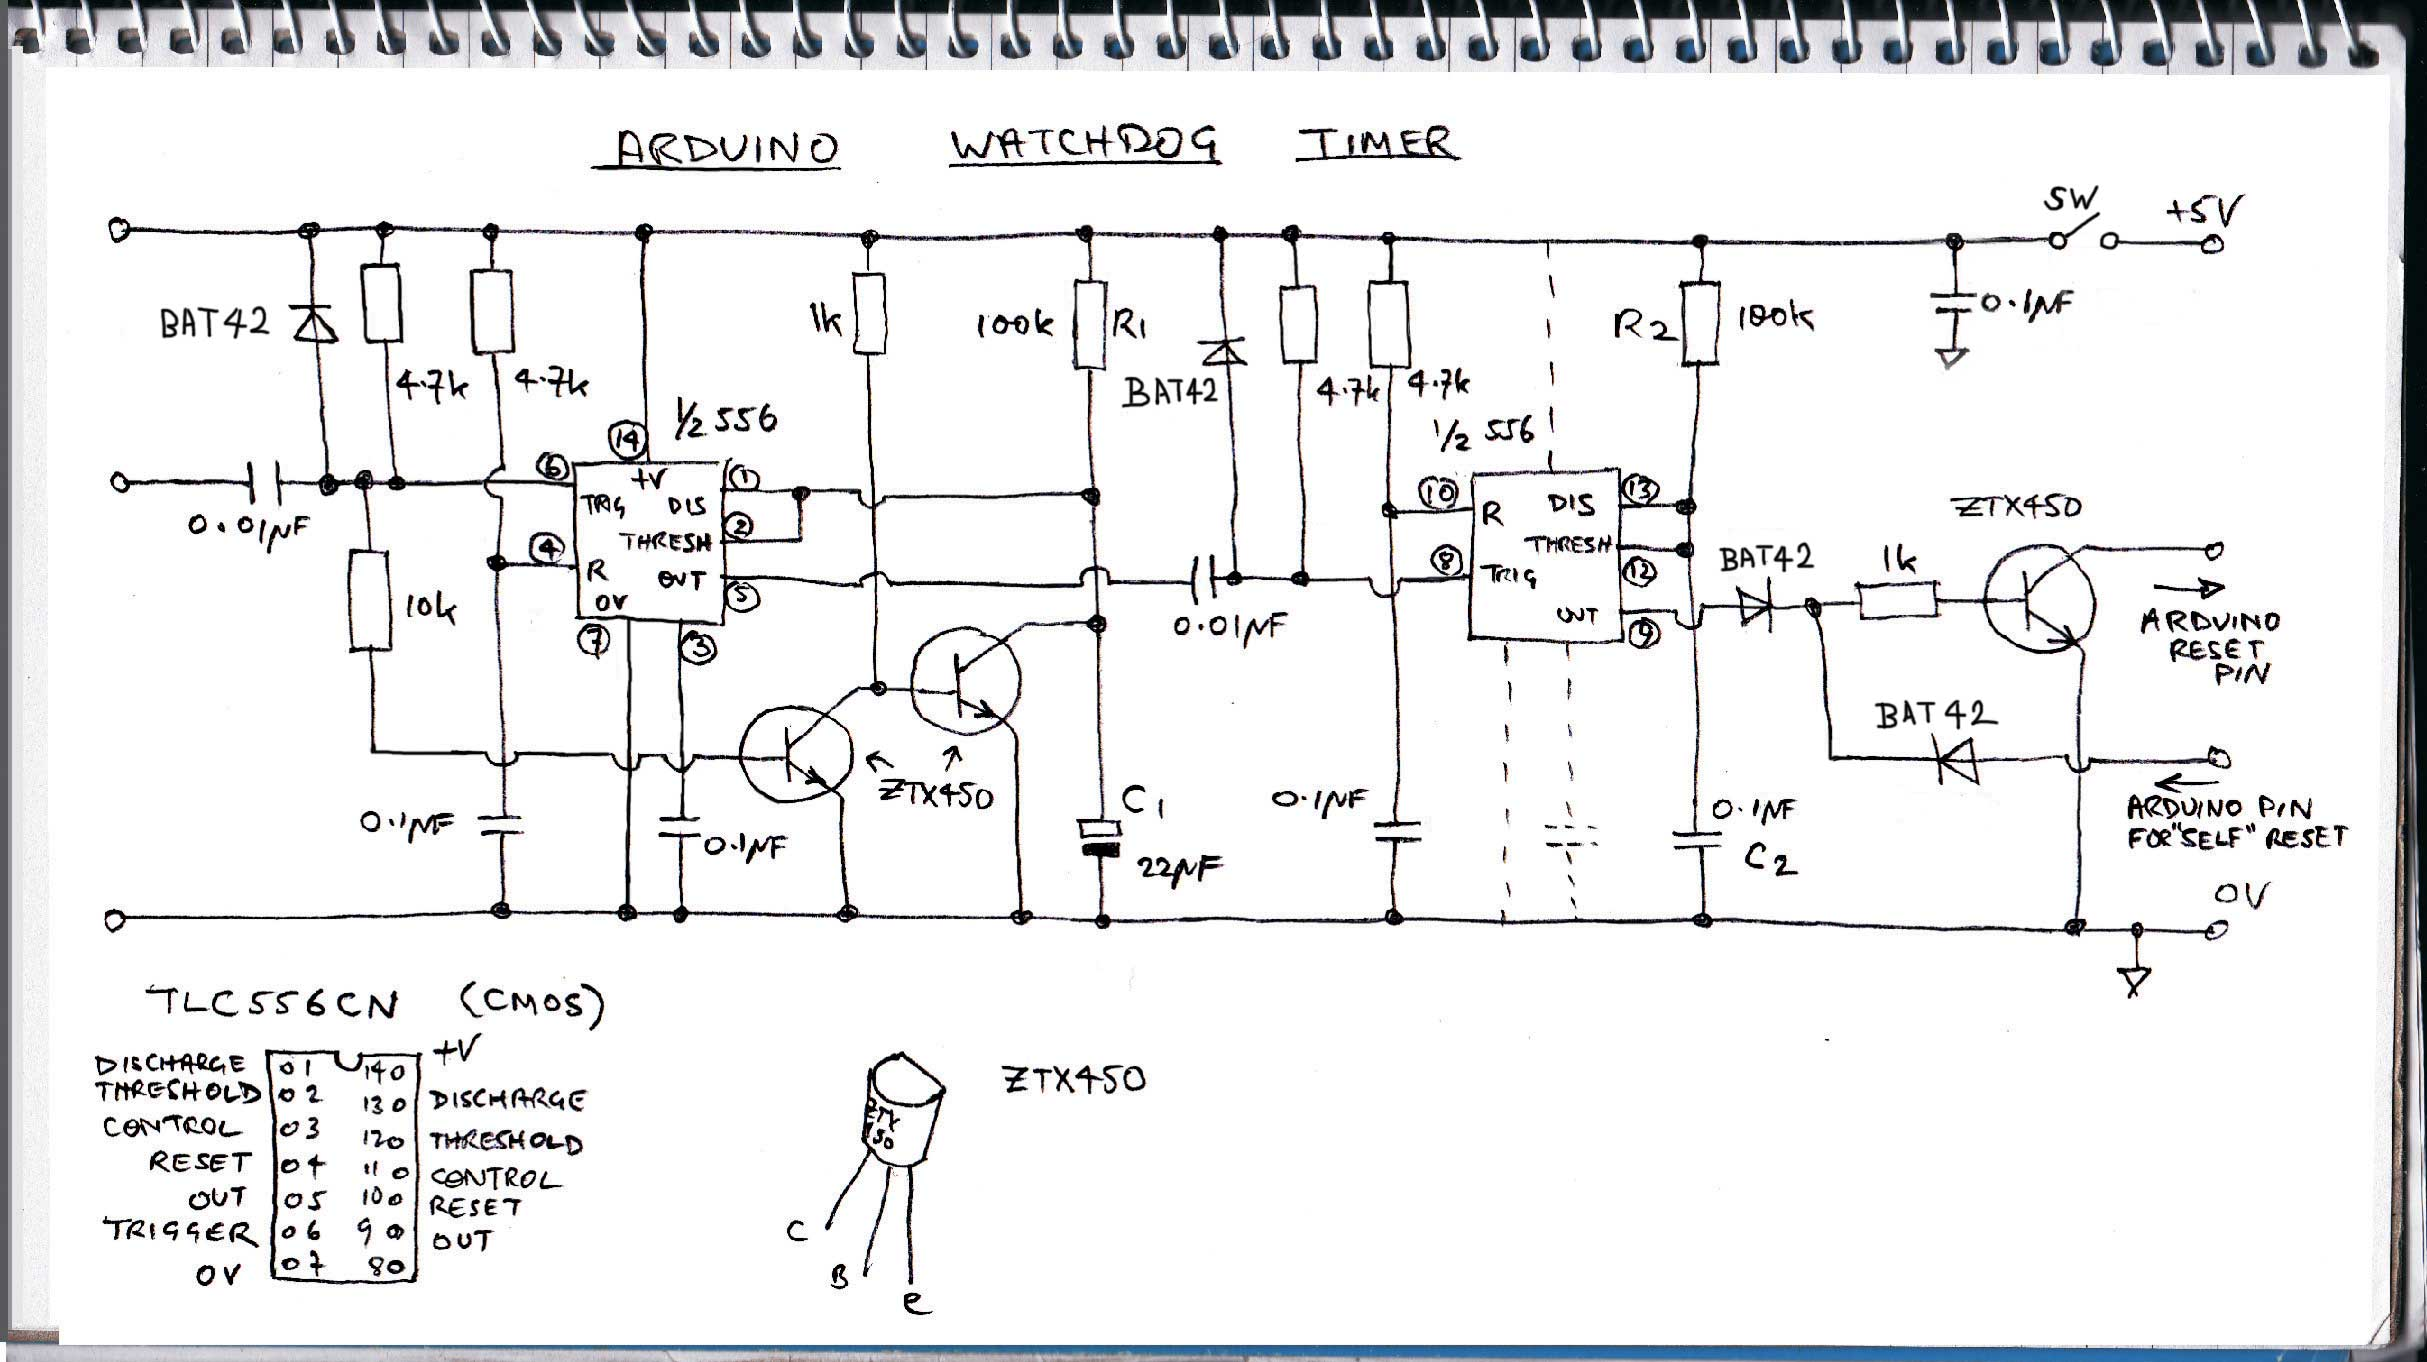 Arduino watchdog circuit